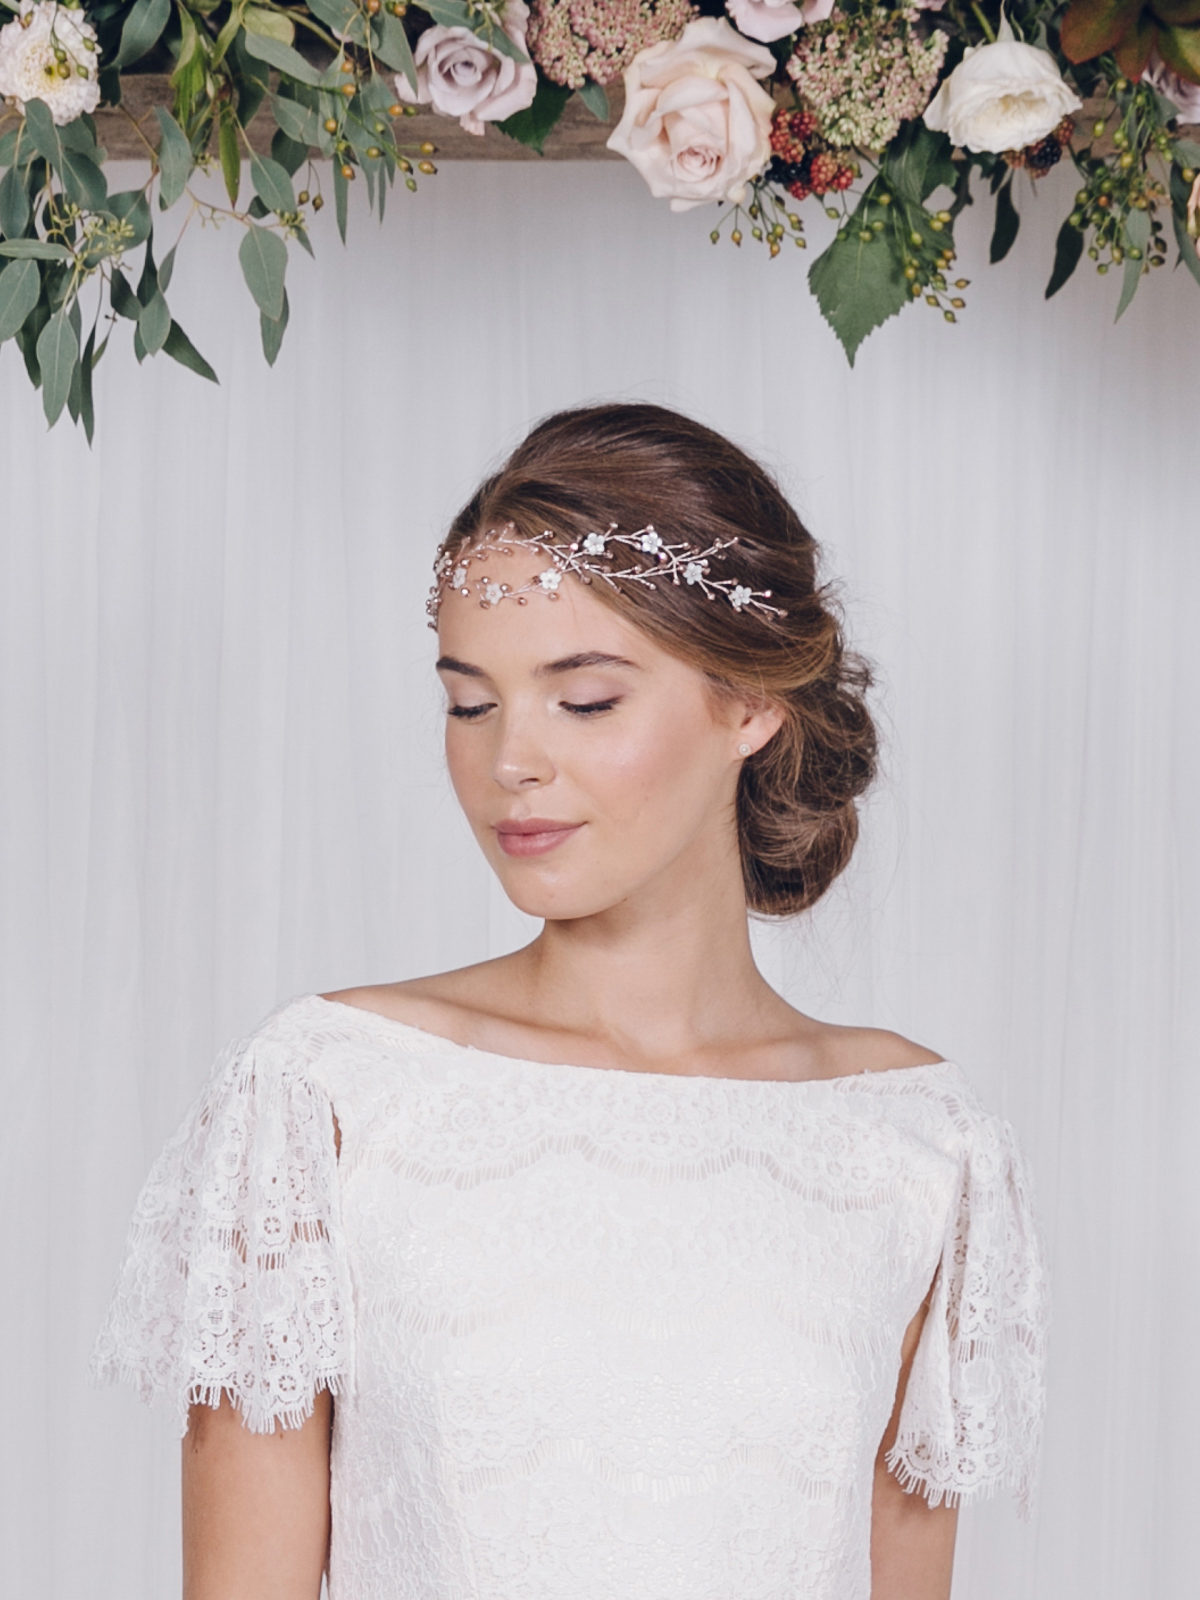 wild rose – the luxurious 2017 bridal accessories collection from